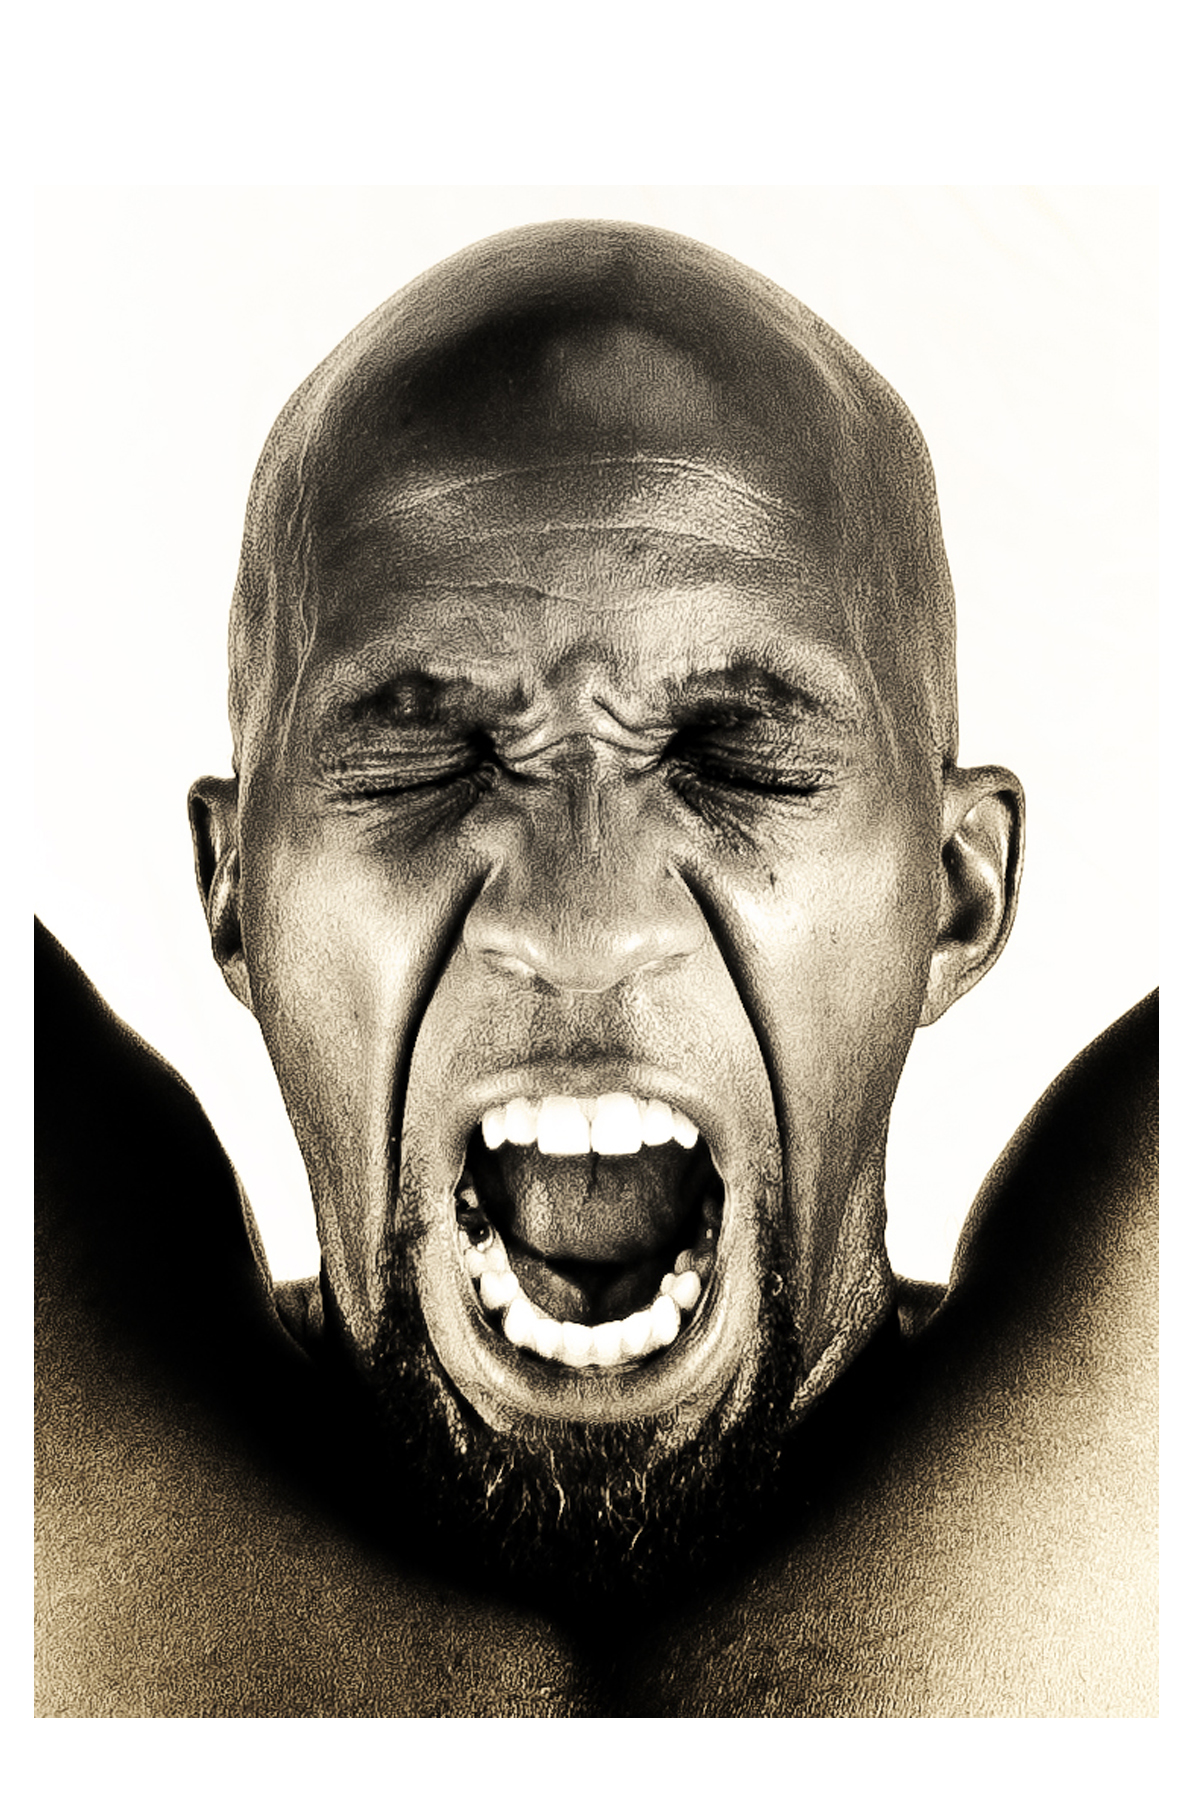 "Toni Scott. Cry of the Black Man, 2009. Metal Print, 20 x 30"" x 2"""